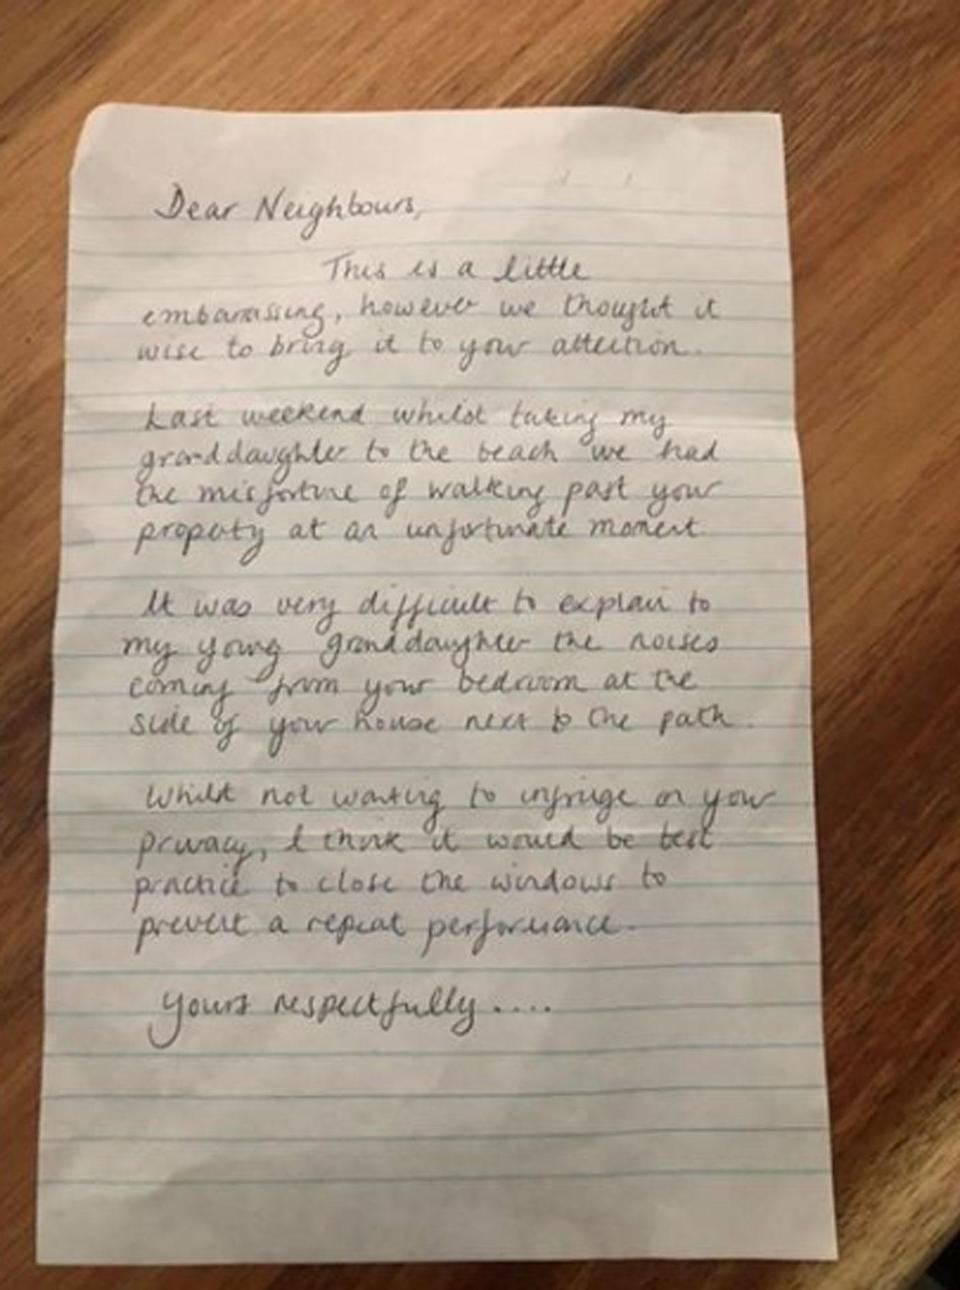 A Queensland homeowner has been left shocked after receiving a letter from a neighbour. Photo: Facebook